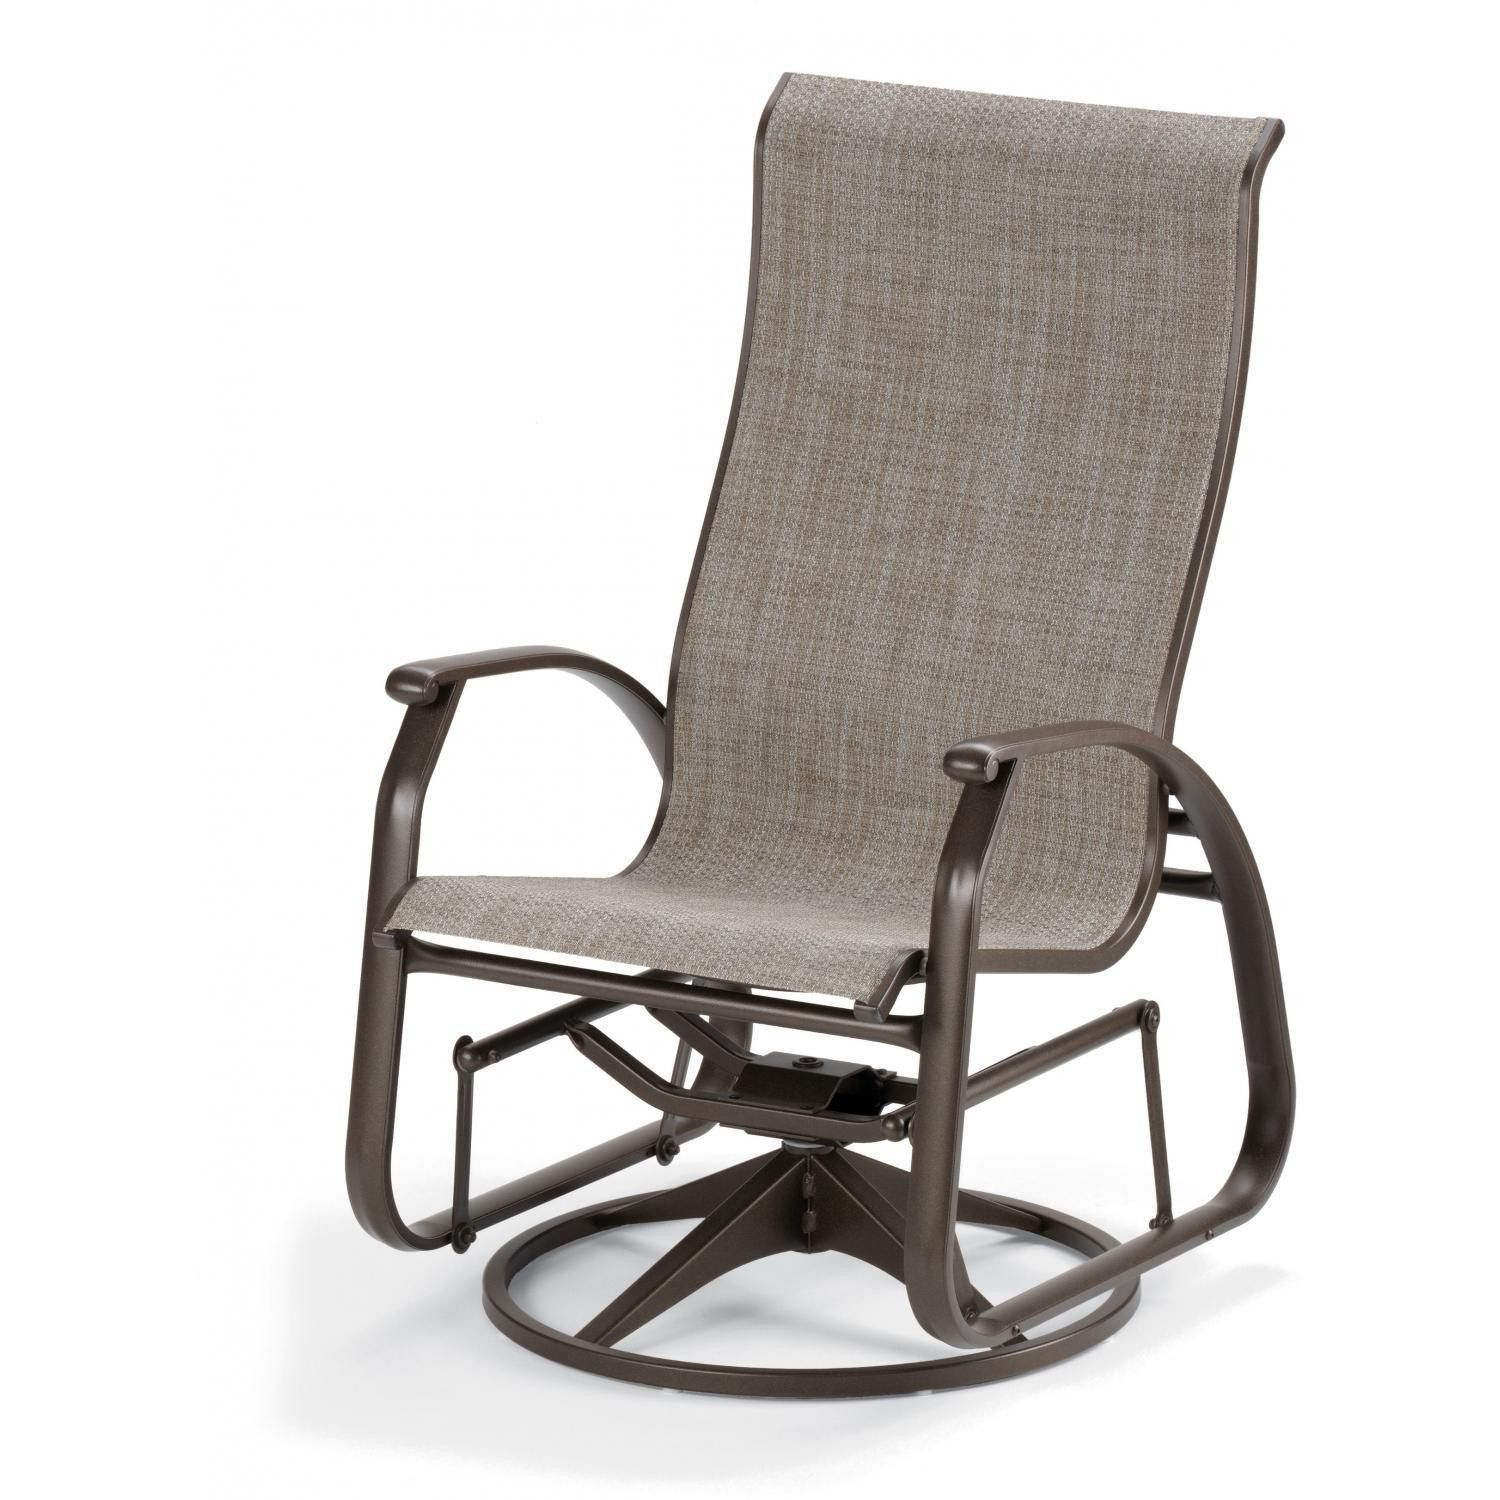 50 Swivel Glider Patio Chairs Best Modern Furniture Check More At Http